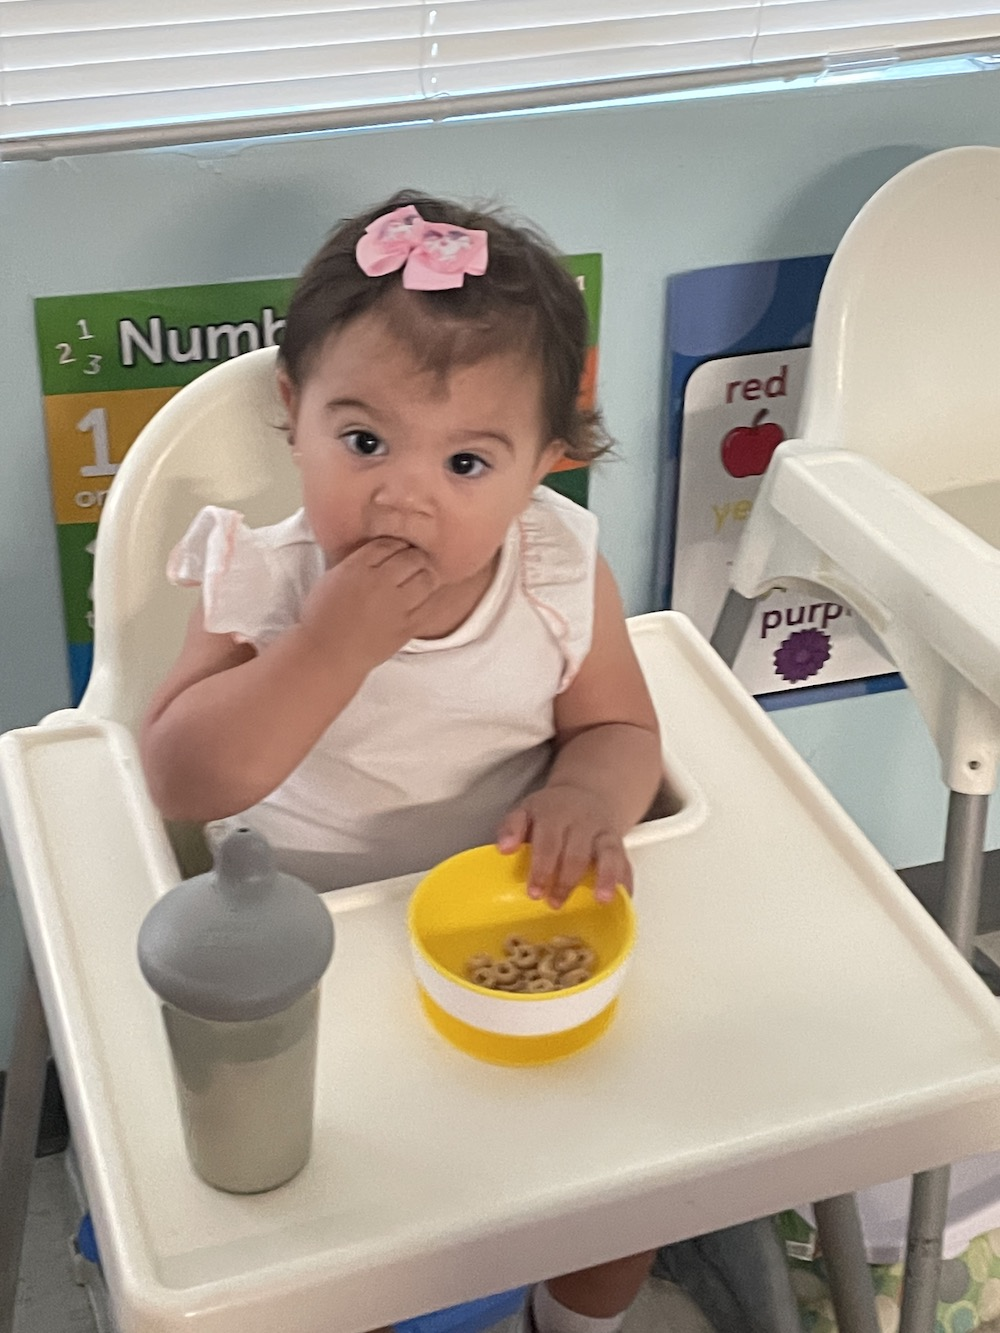 A toddler girl with a pink bow in her hair eats Cheerios with her fingers sitting in a high chair.